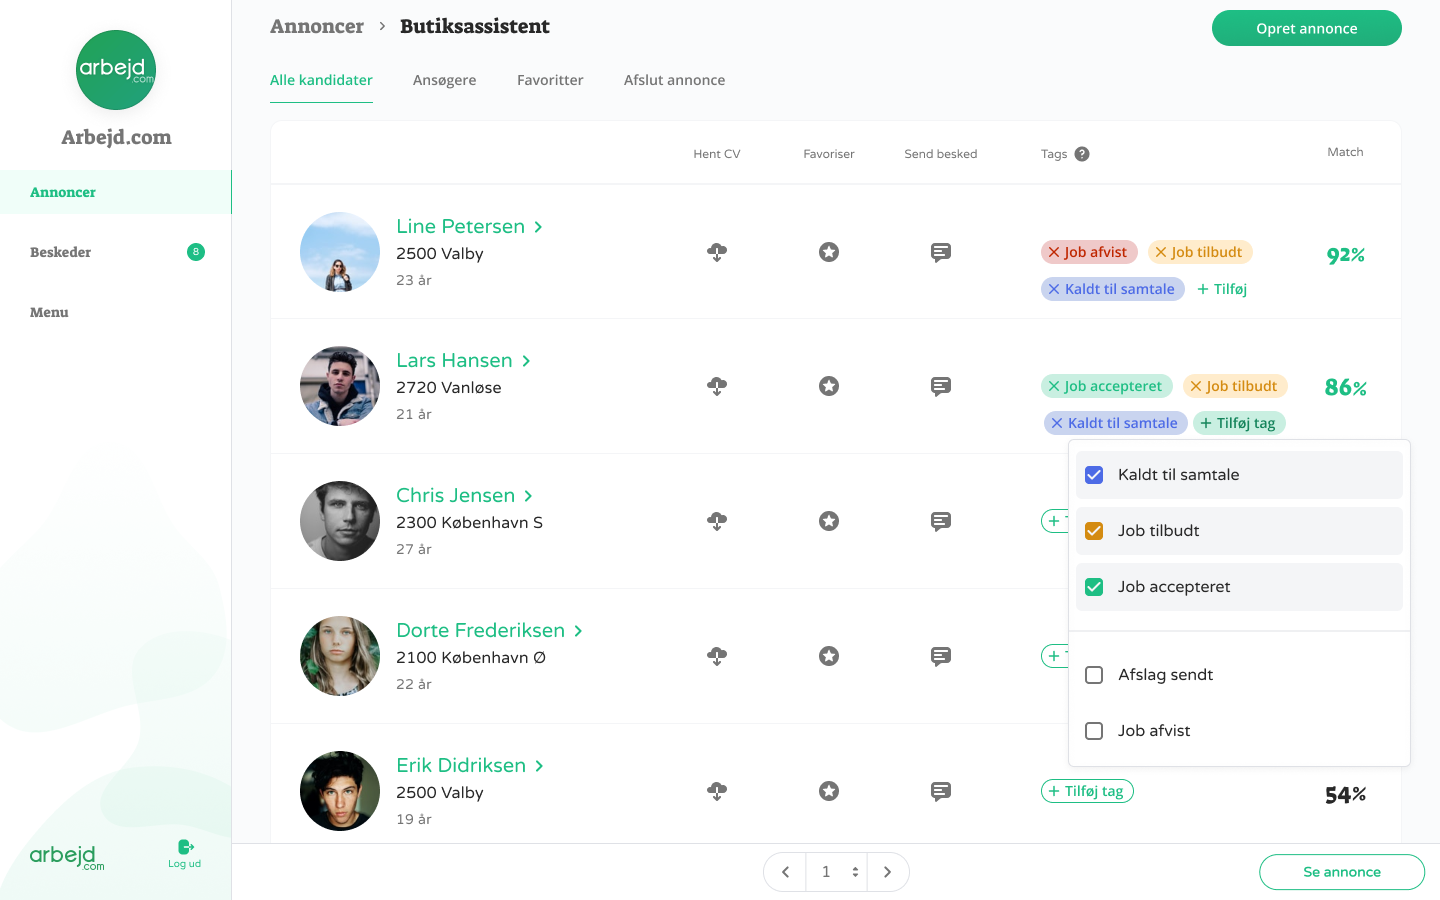 A snapshot of the Arbejd.com dashboard showing candidates